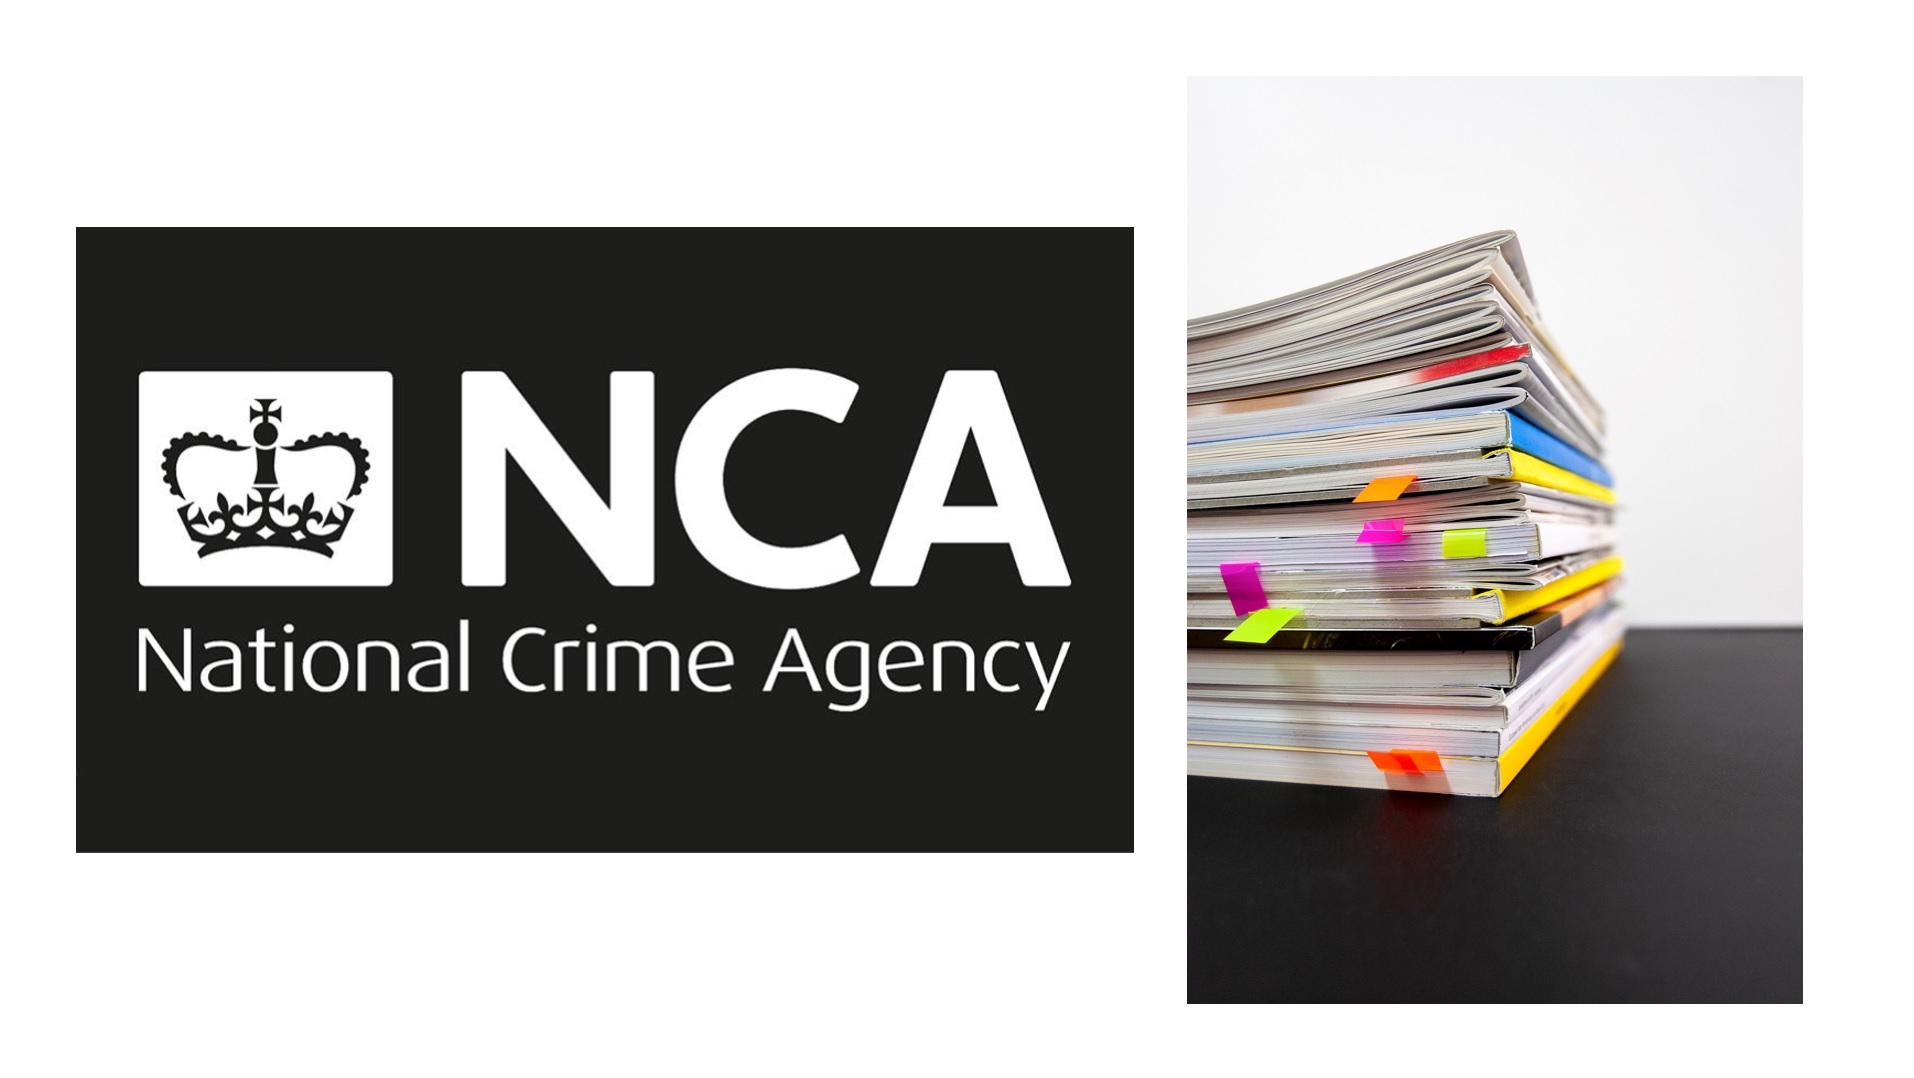 Head of NCA calls for reform on defensive reporting